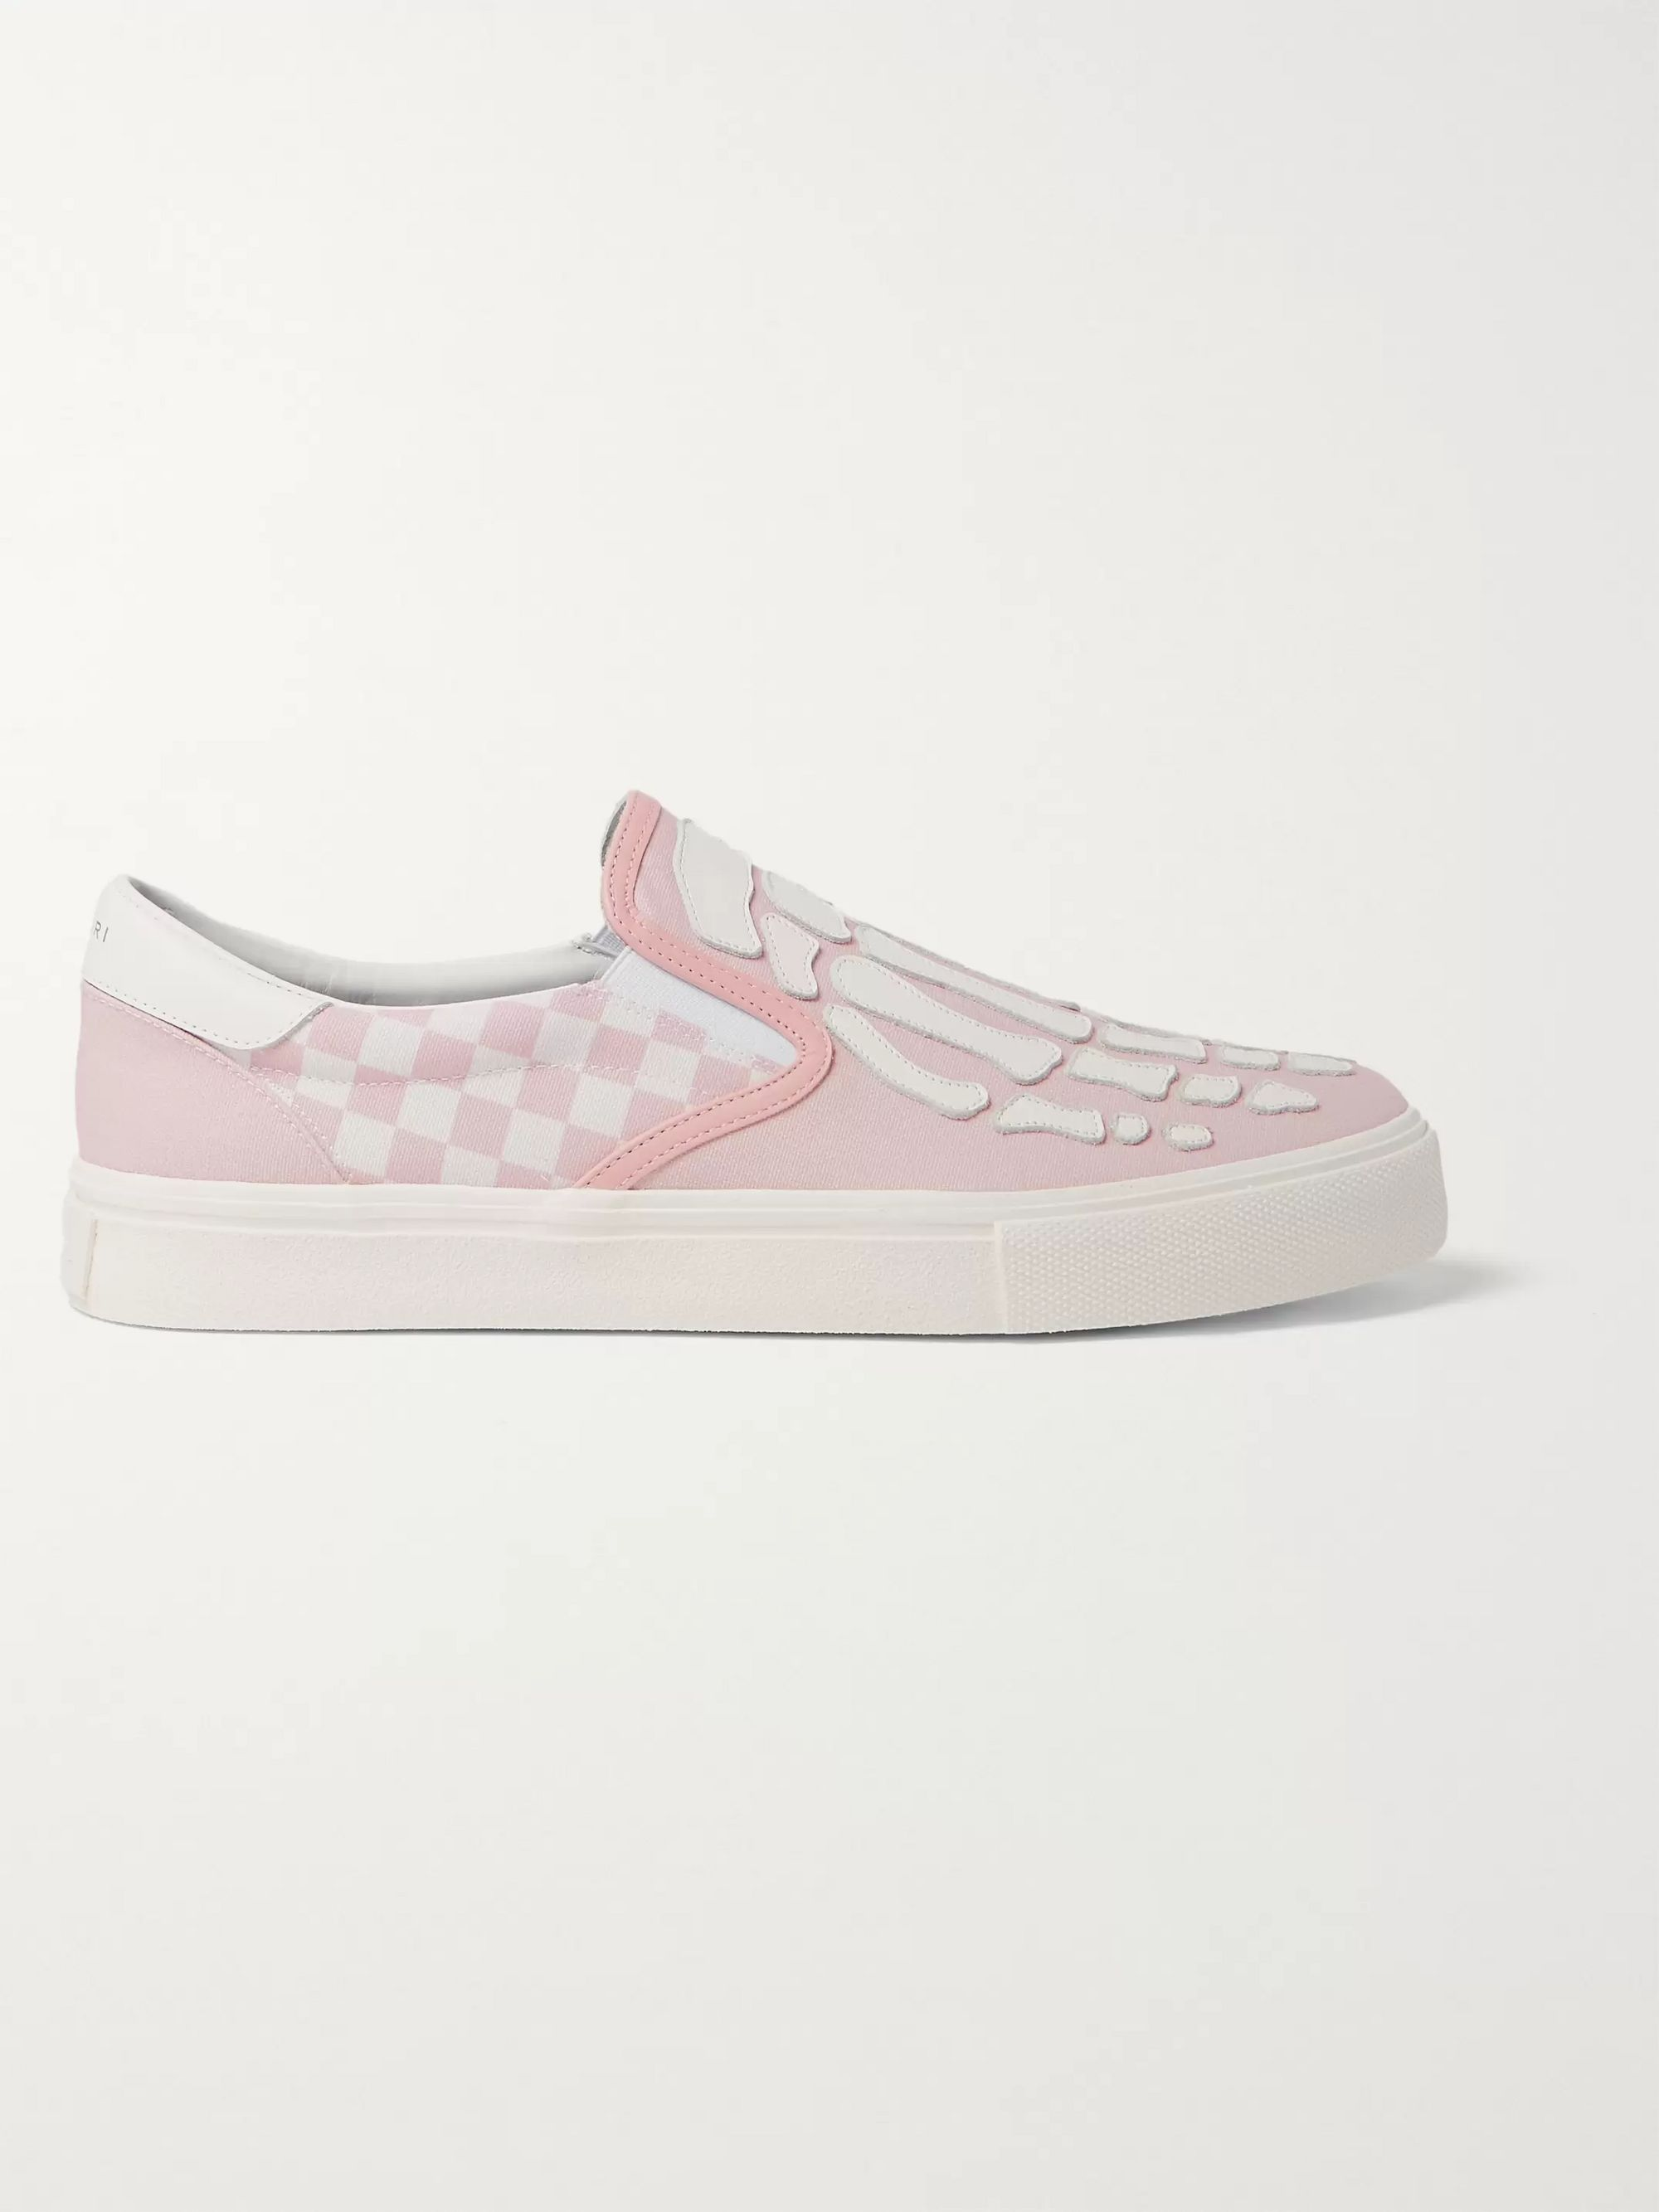 AMIRI Skel Toe Leather-Appliquéd Checked Canvas Slip-On Sneakers